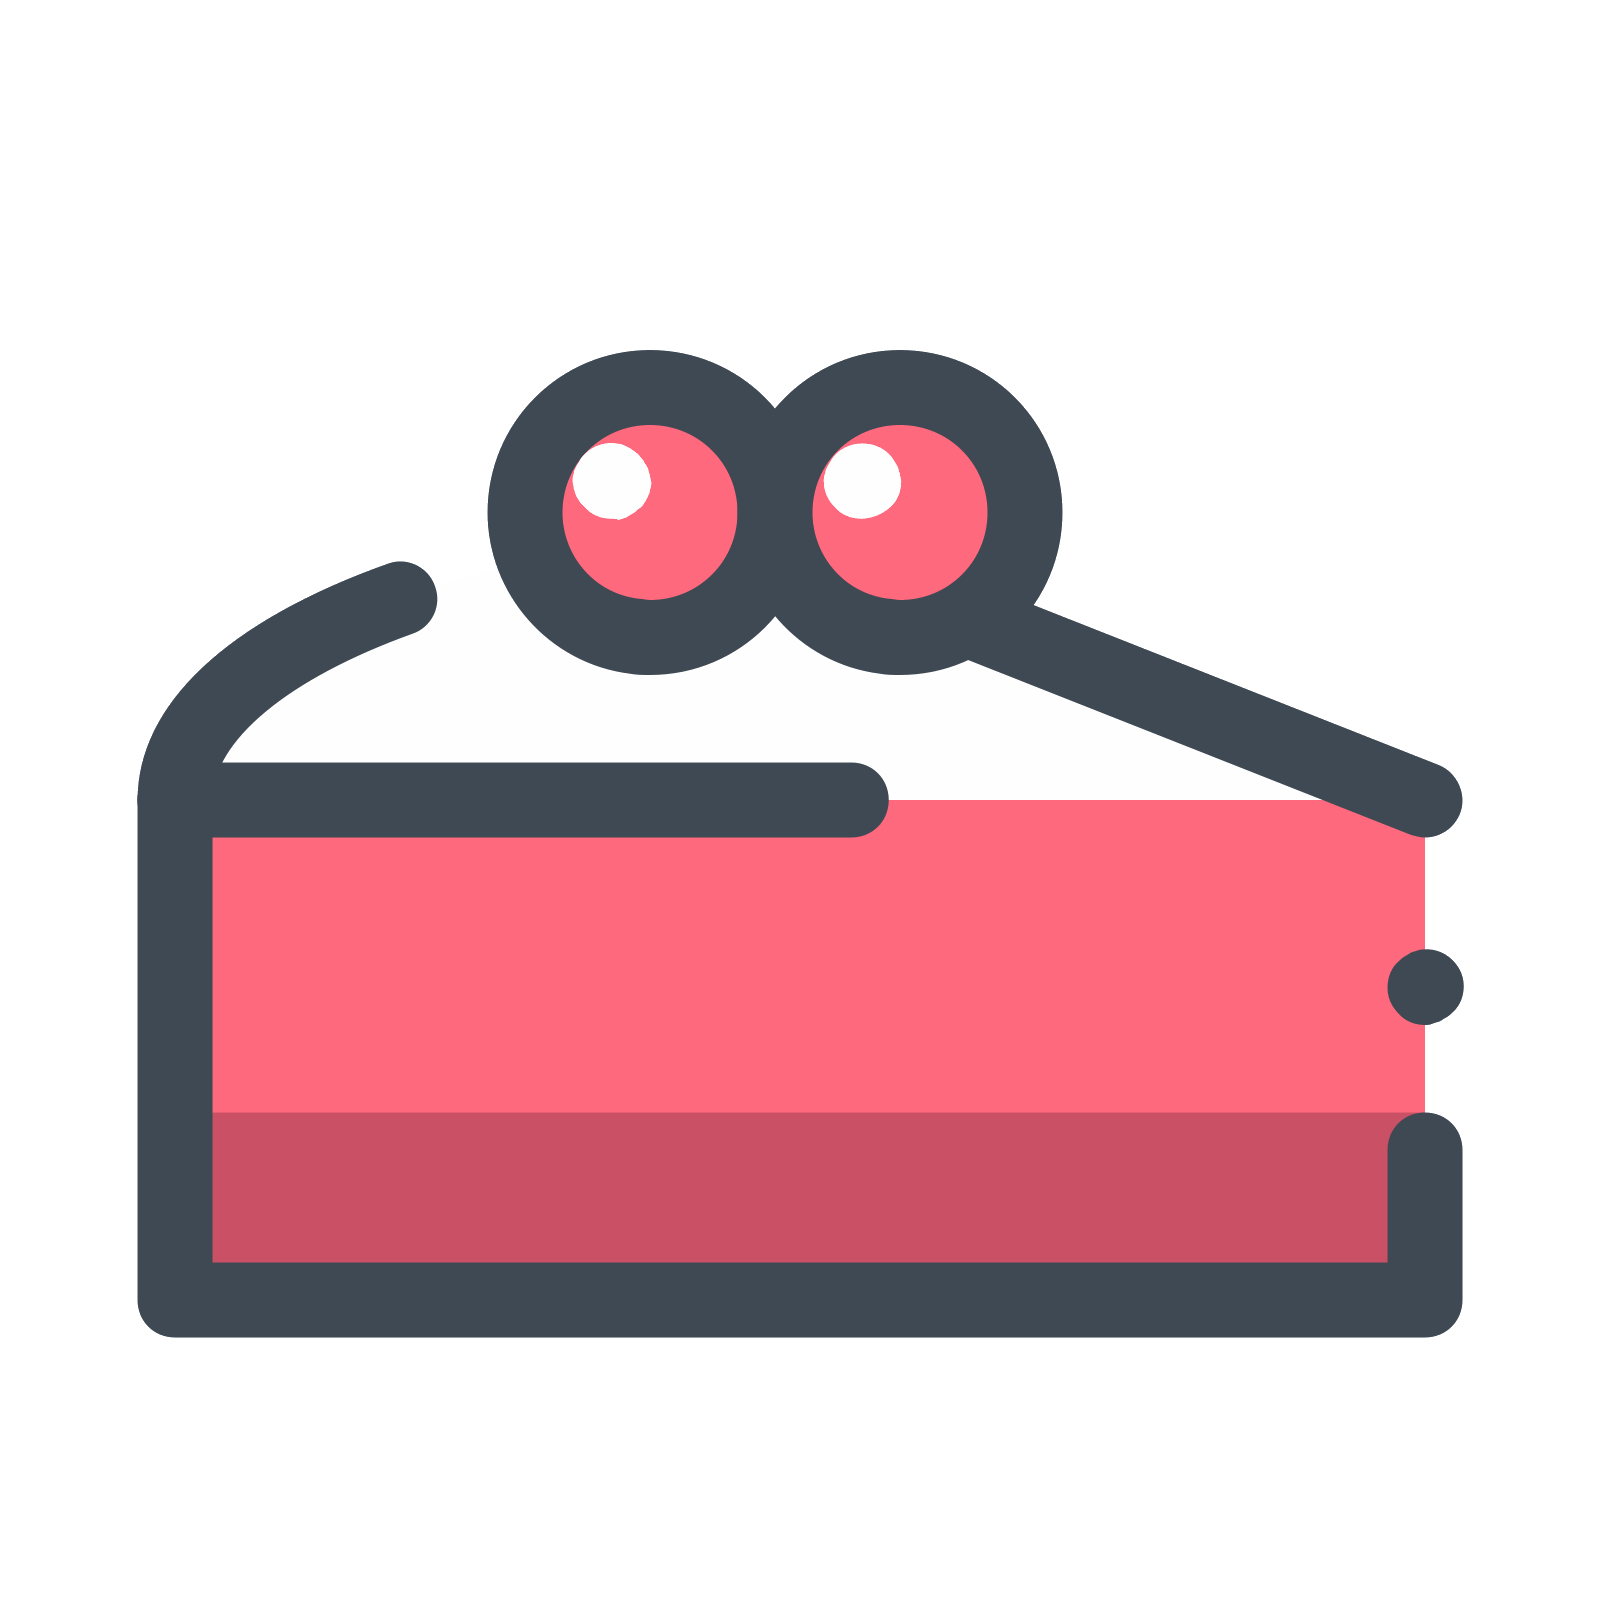 Clipart cake cake slice. Icon free download png